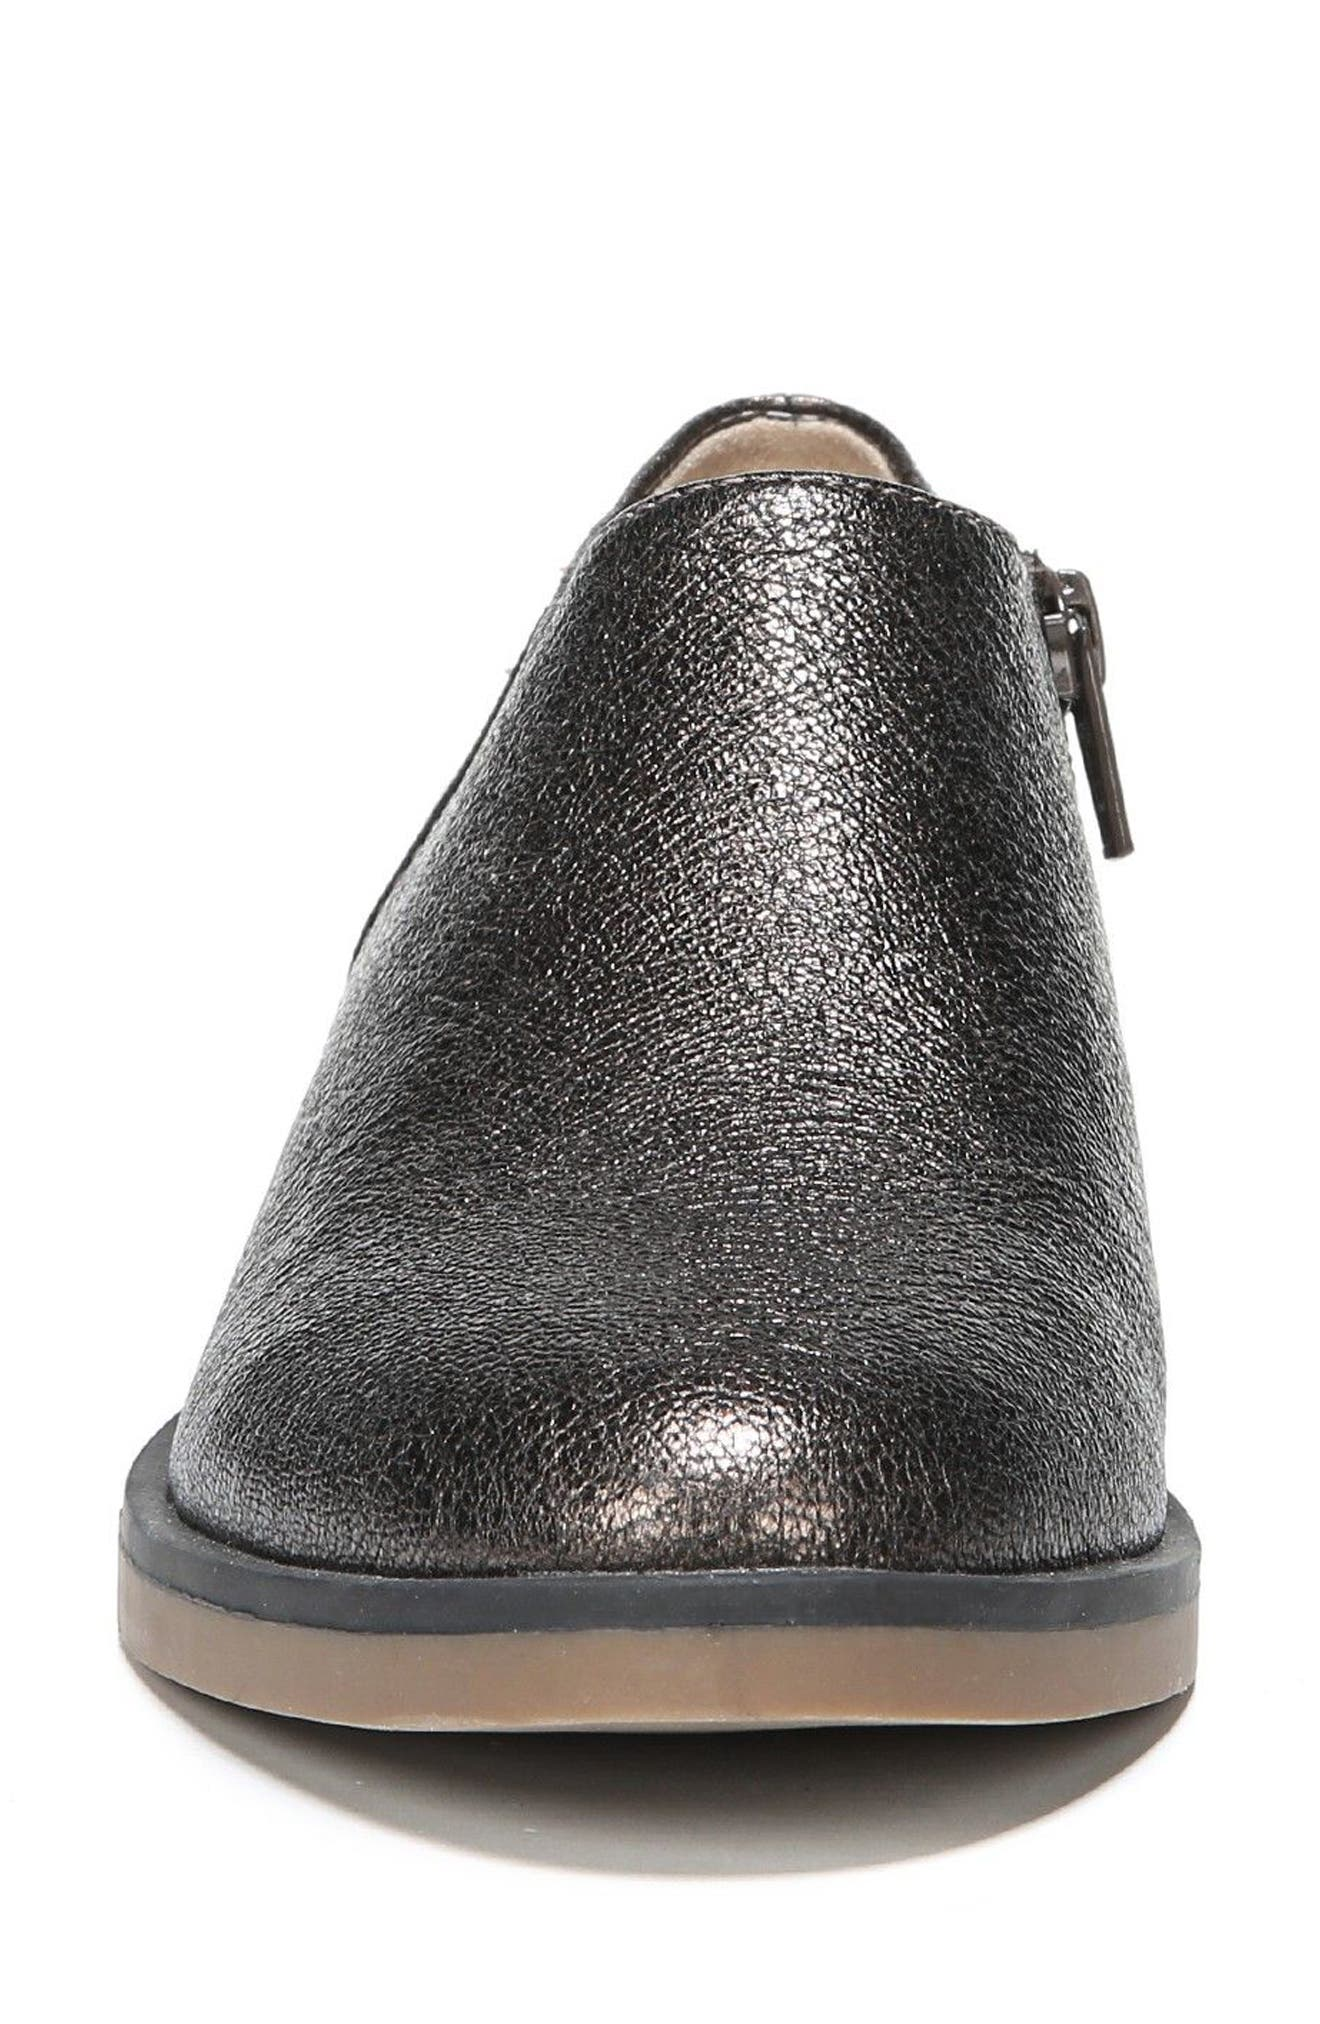 Reagan Bootie,                             Alternate thumbnail 4, color,                             Bronze Leather